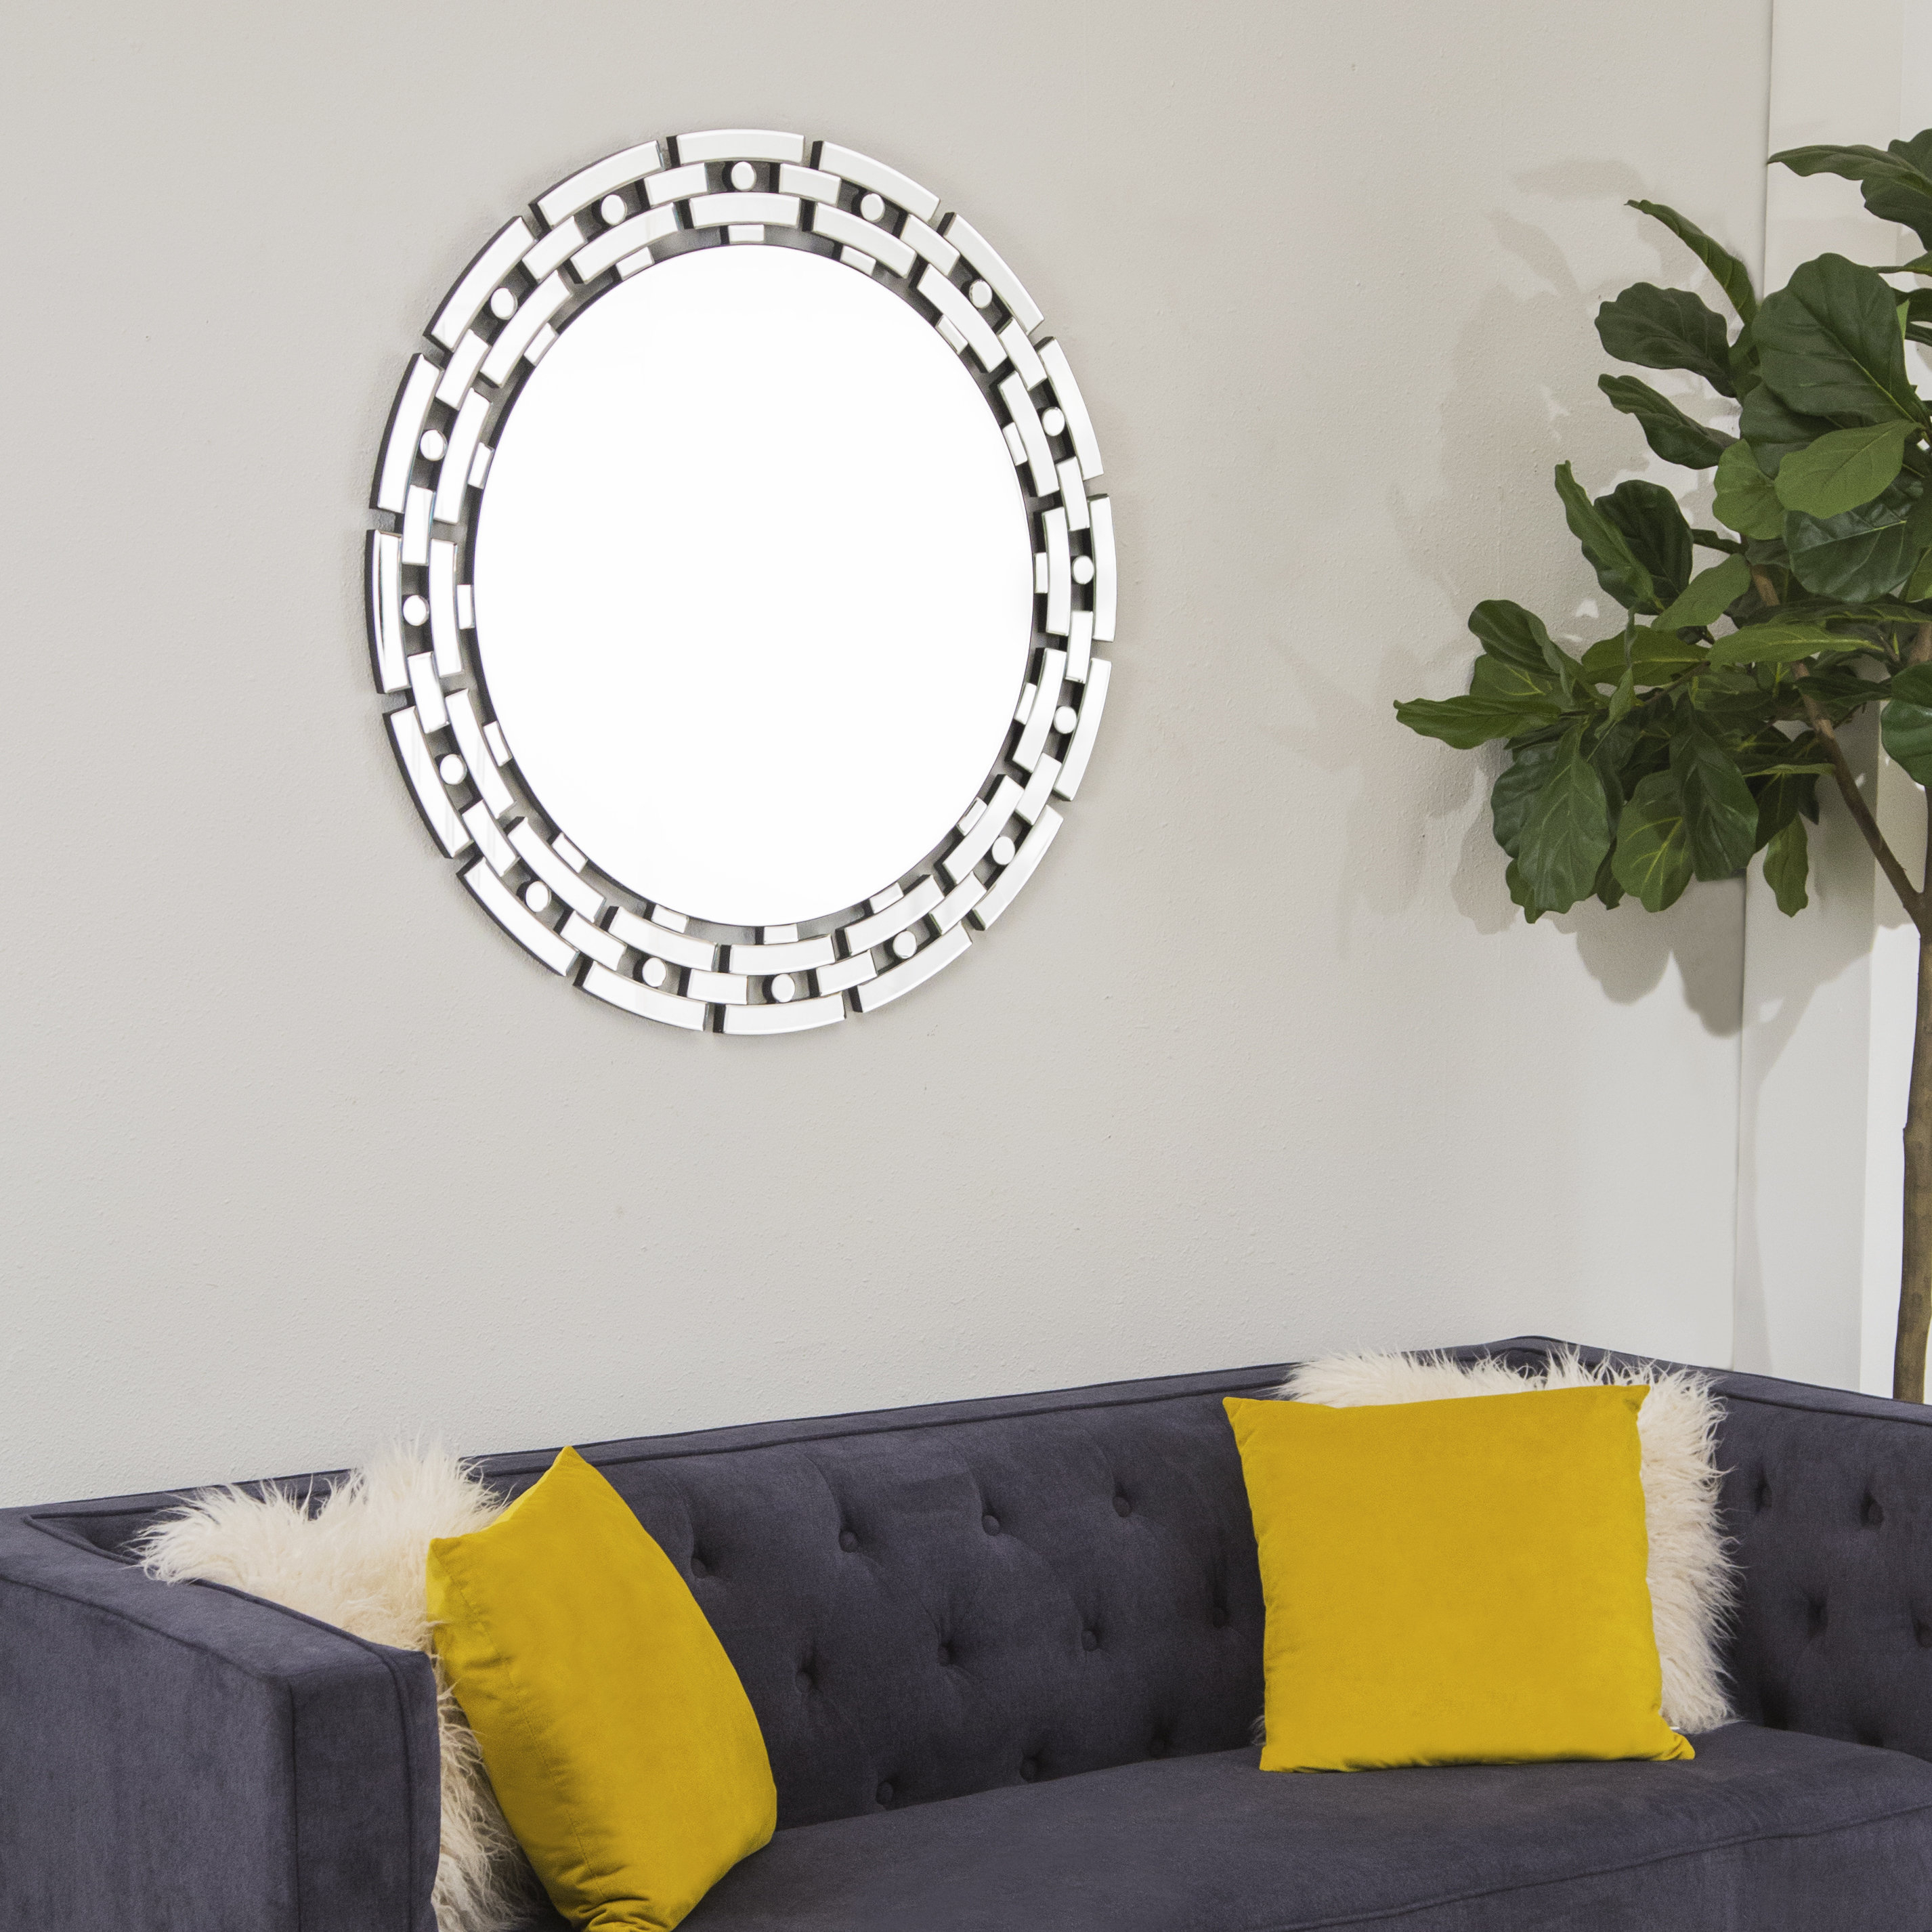 Huckins Modern & Contemporary Beveled Accent Mirror Intended For Modern & Contemporary Beveled Accent Mirrors (View 18 of 30)